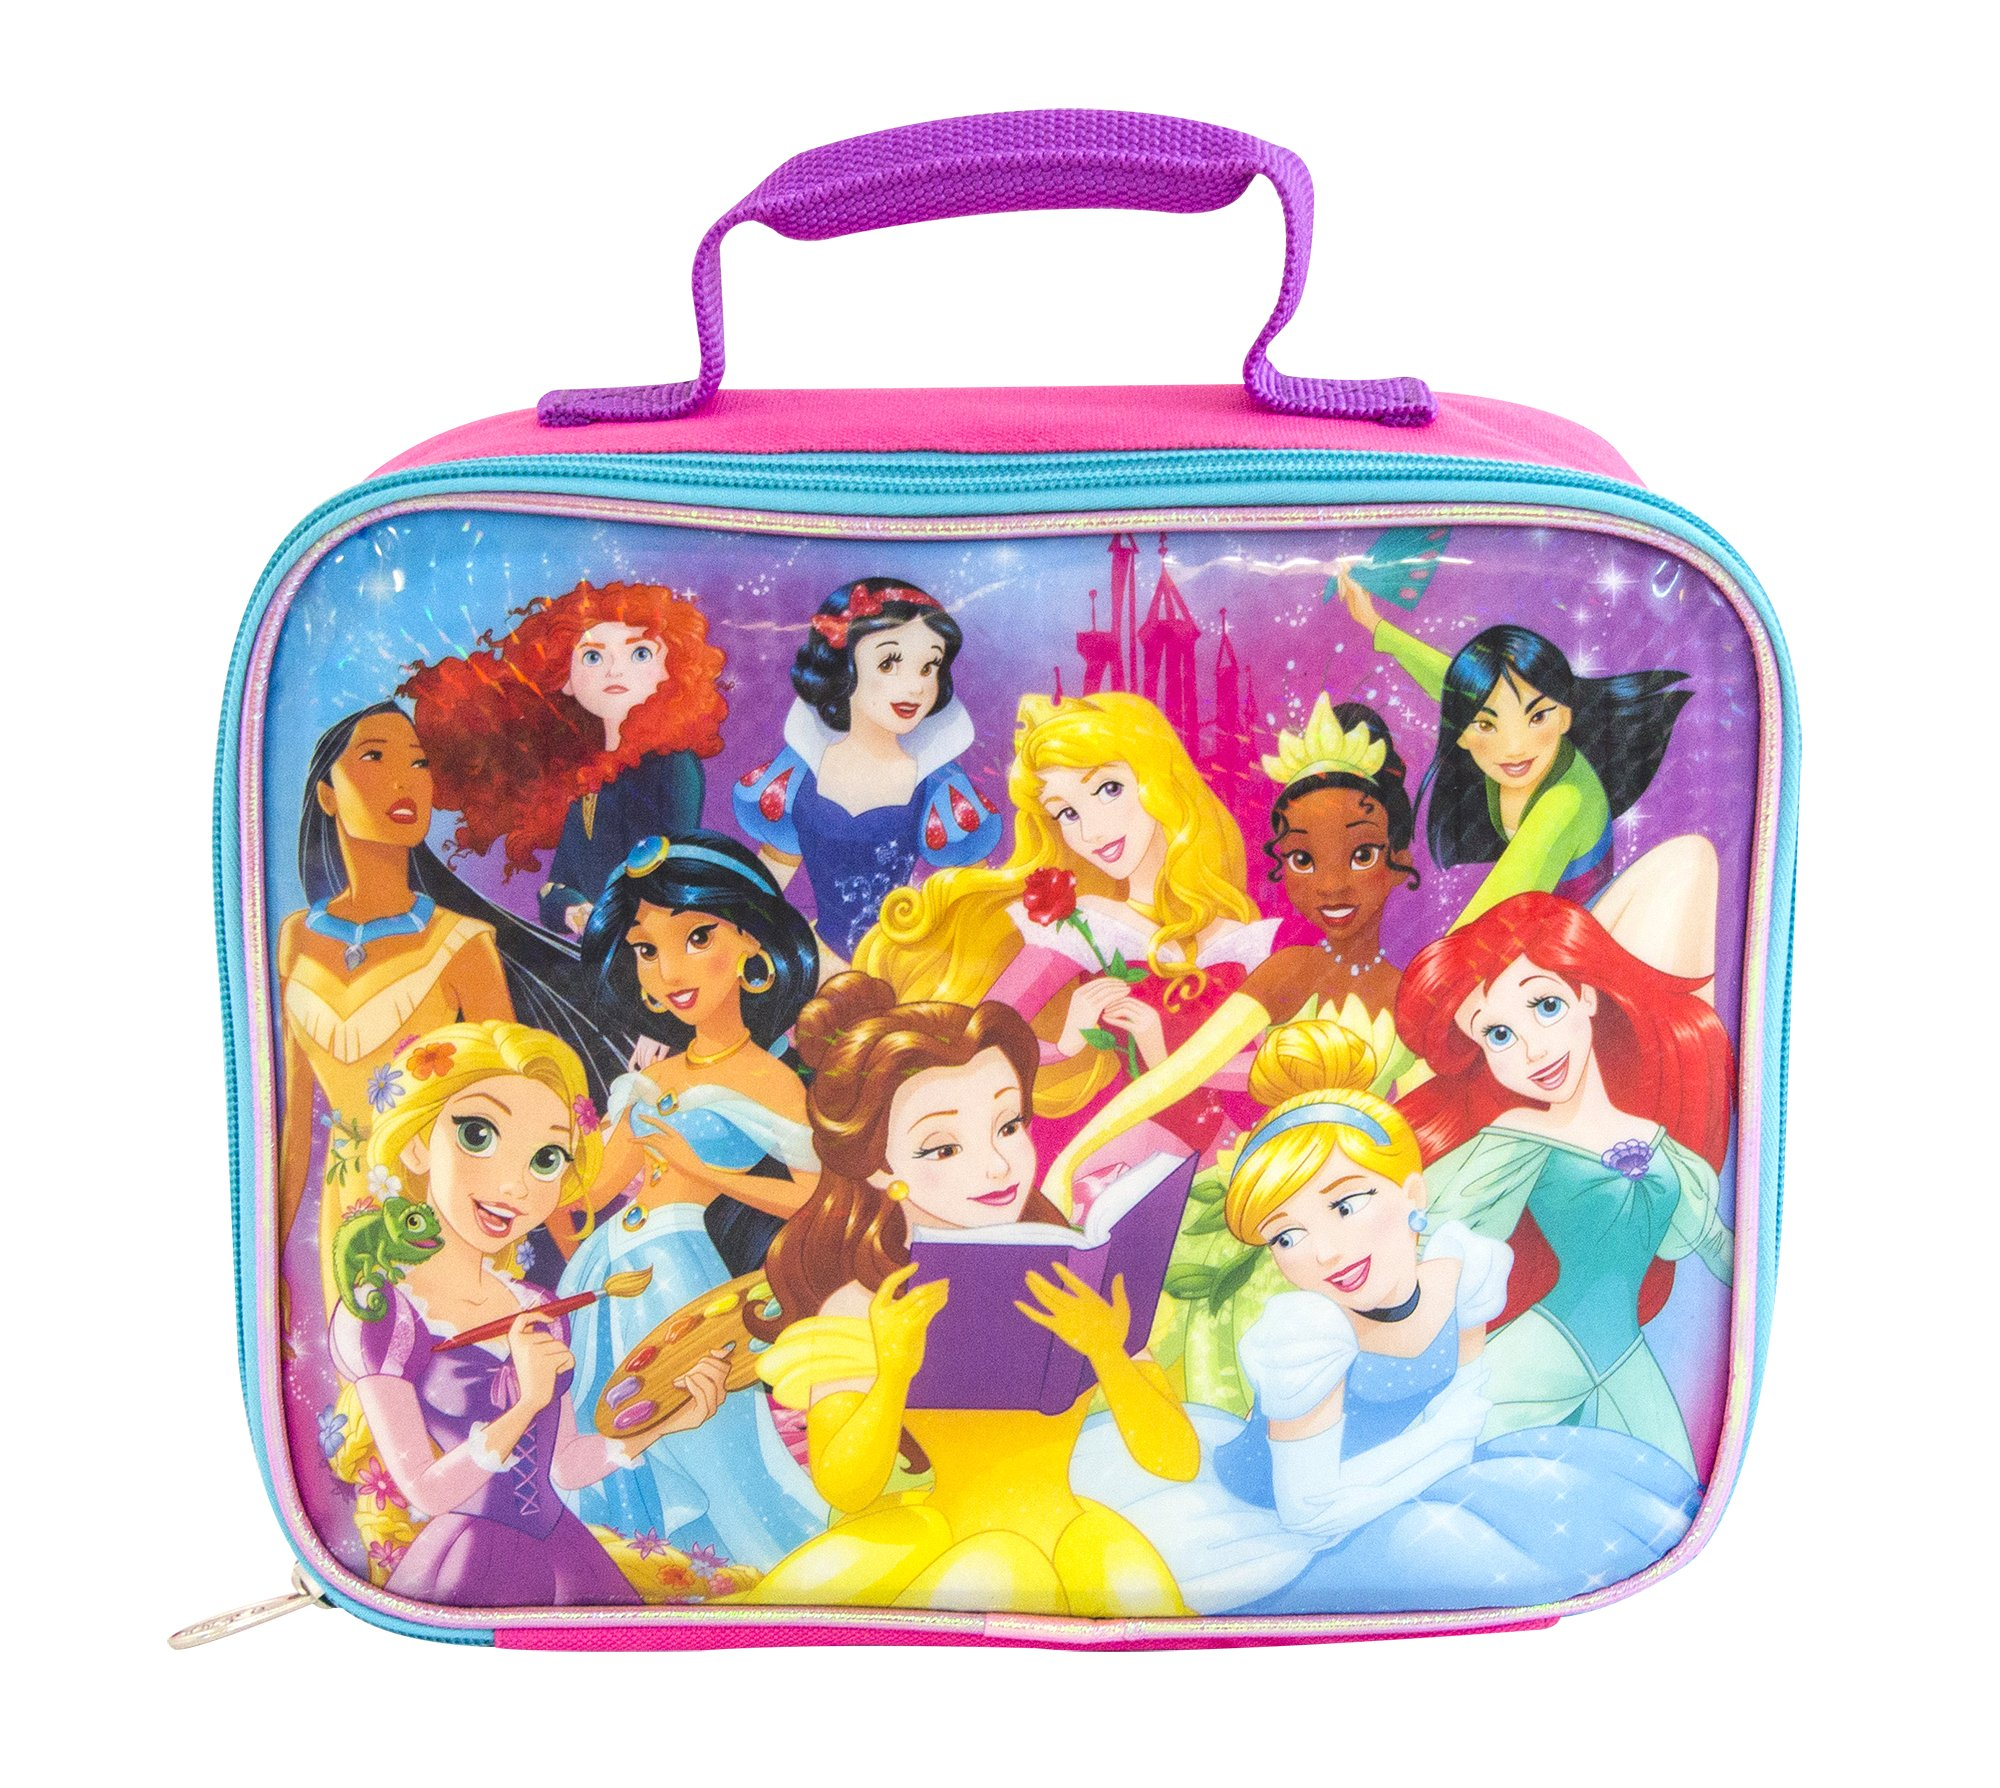 c859424813b Amazon.com  Disney PR29265-SC-PK00 Princess Insulated Lunch Kit One Size  Pink  Kitchen   Dining